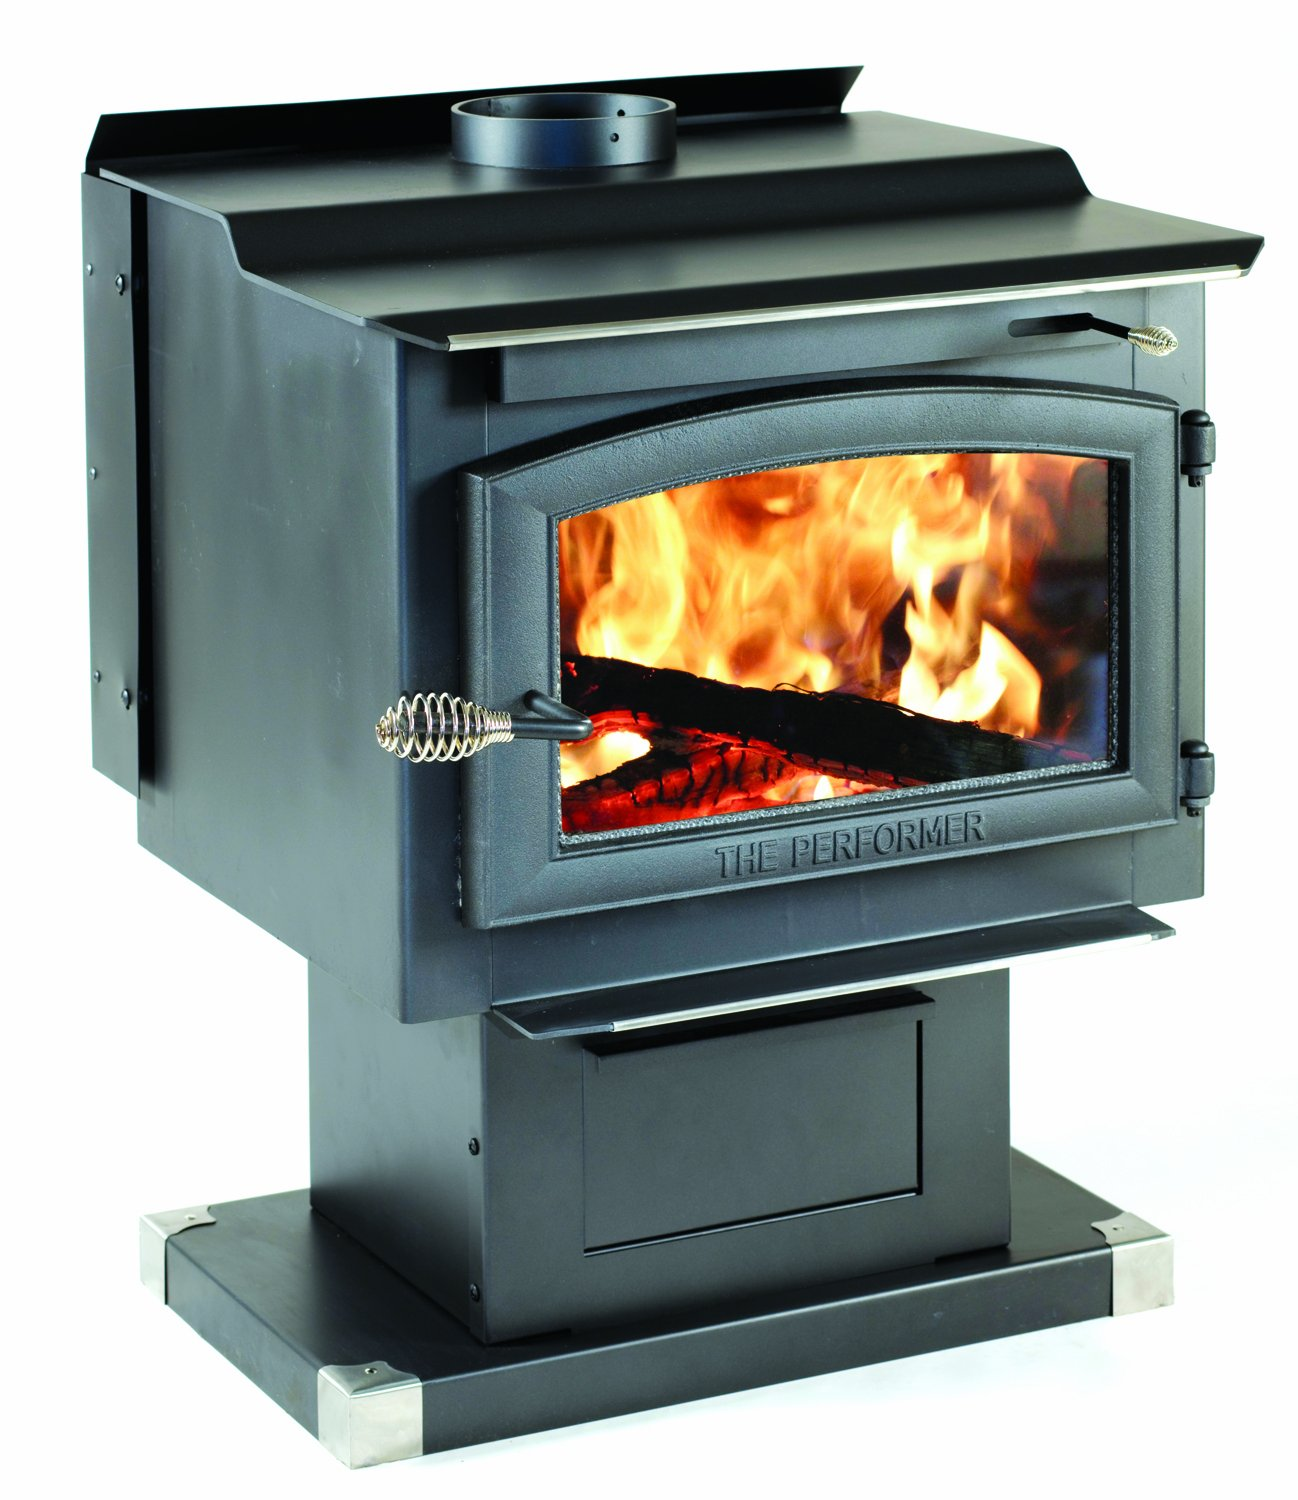 - Amazon.com: Vogelzang TR009 Performer EPA Wood Stove: Home & Kitchen